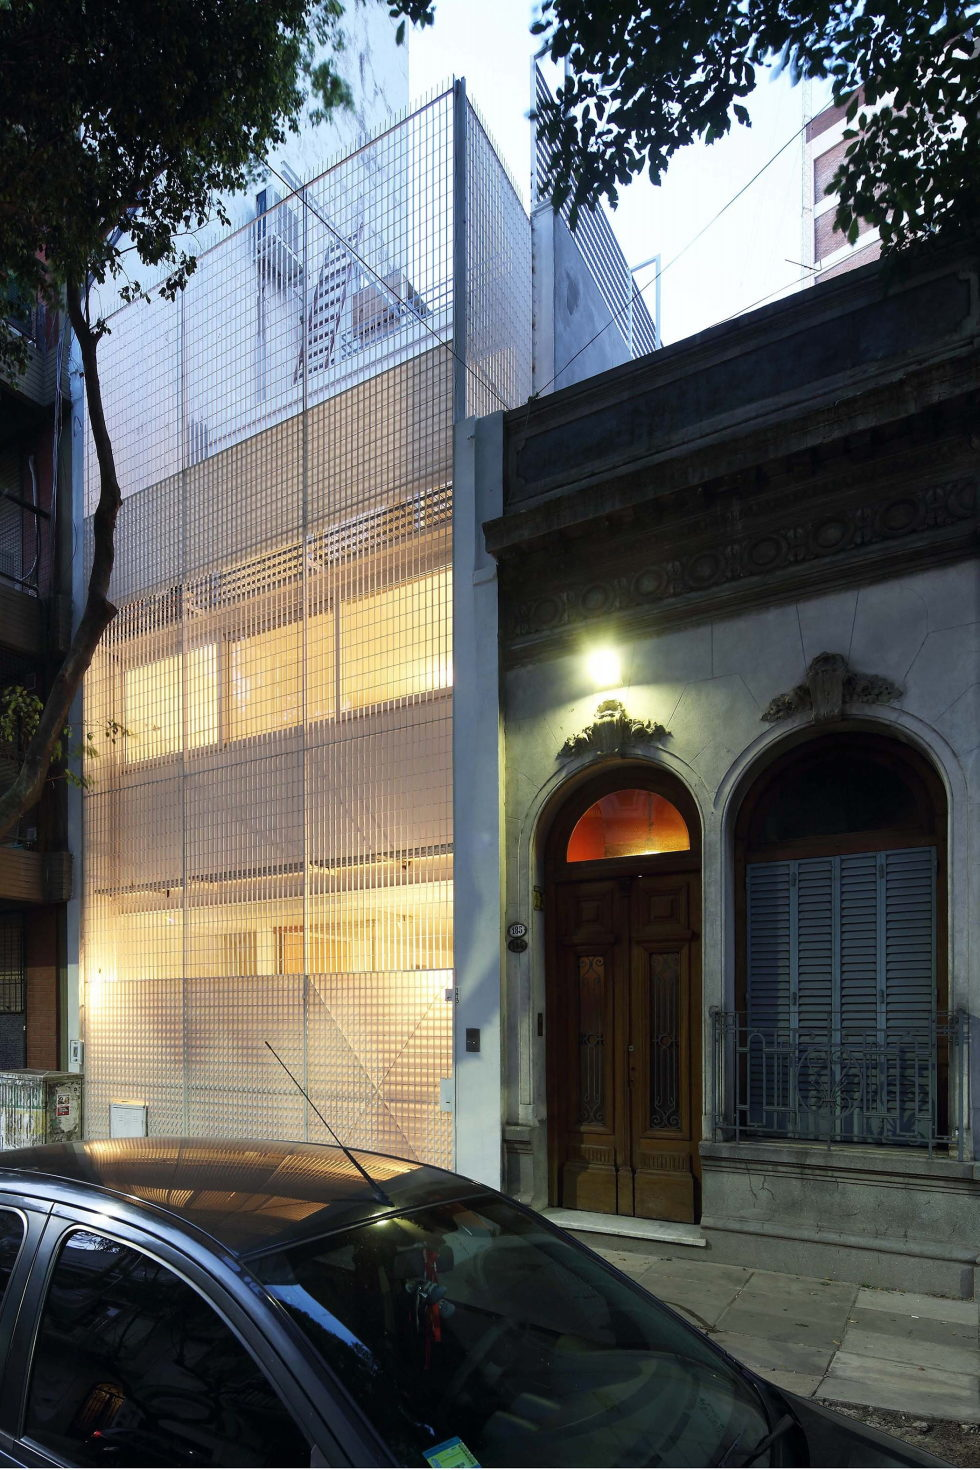 Jauretche House In Buenos Aires upon the project of Colle-Croce 4